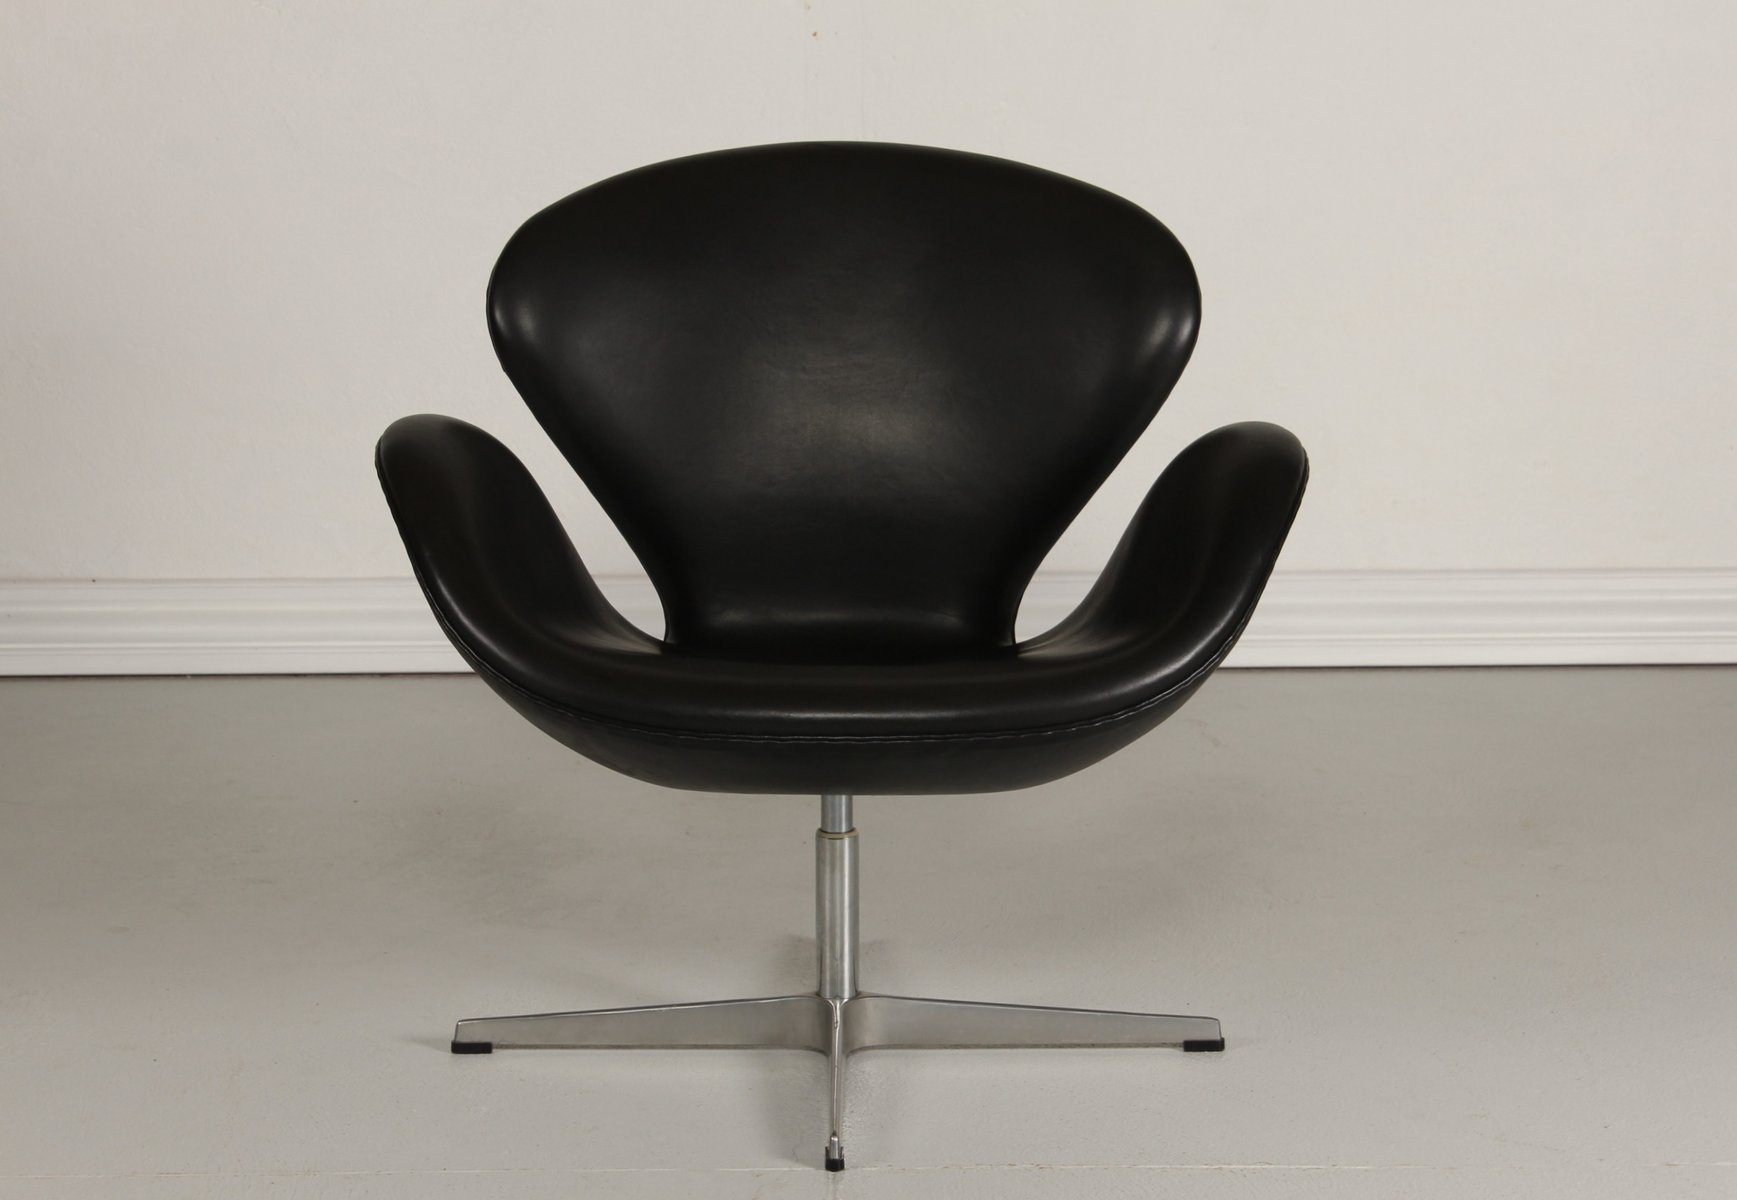 This arne jacobsen swan chair in cognac leather by fritz hansen is no - Black Swan Chair By Arne Jacobsen For Fritz Hansen 1981